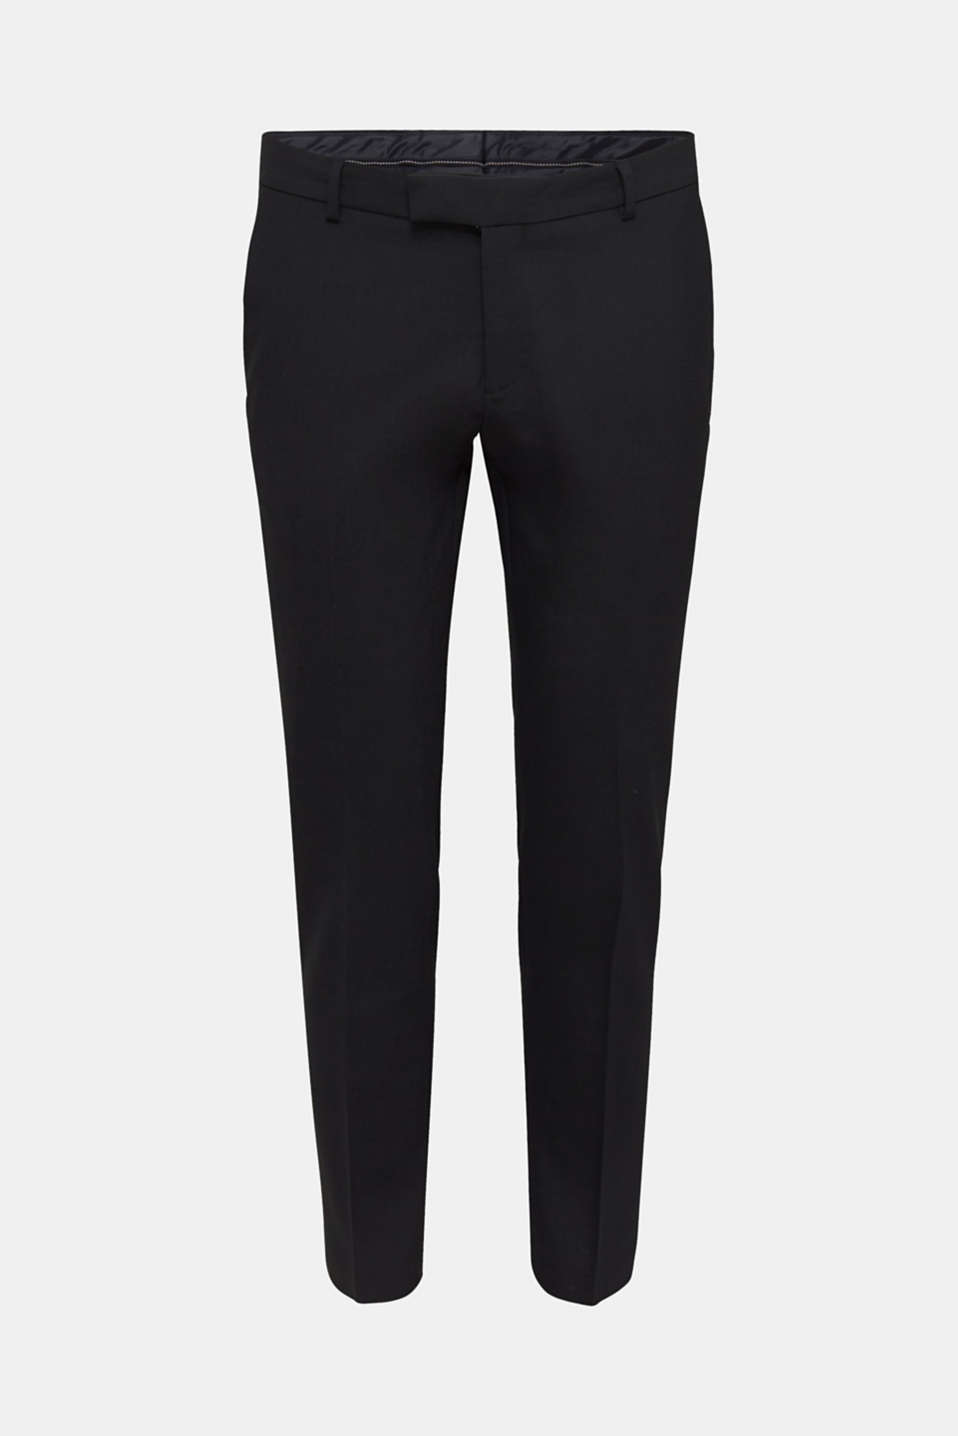 ACTIVE SUIT BLACK trousers made of blended wool, BLACK, detail image number 5